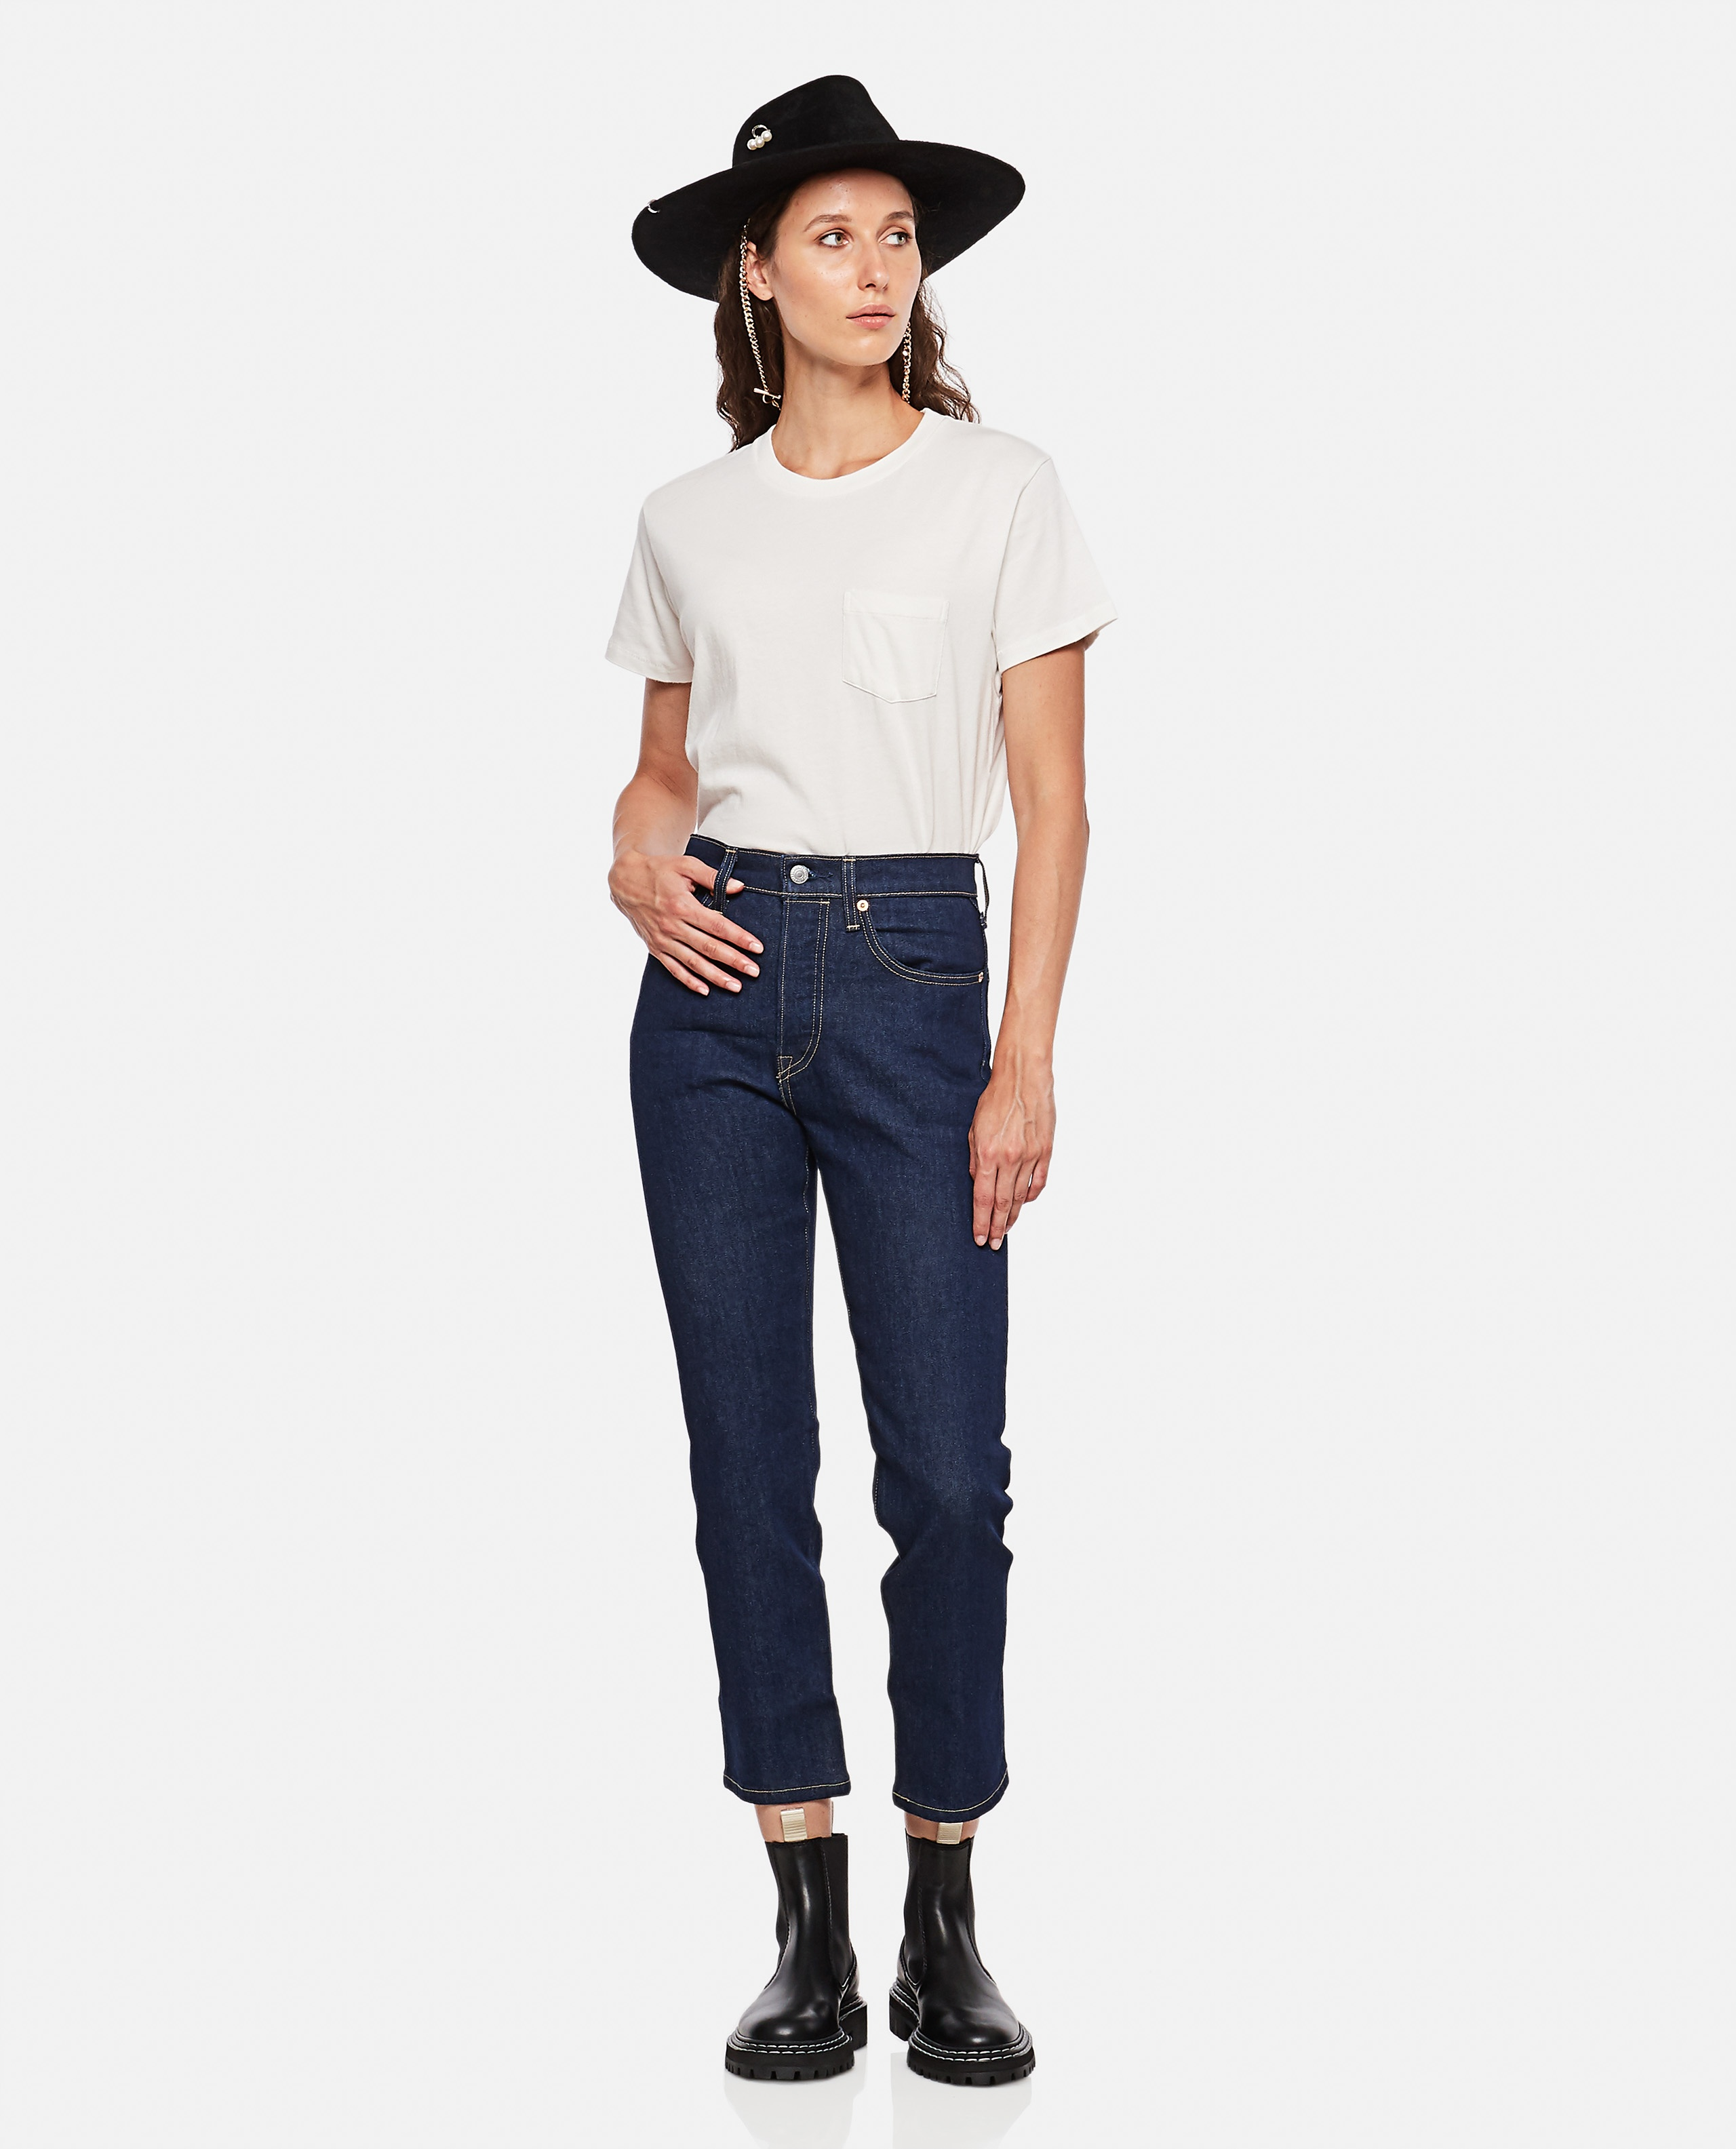 LEVI'S MADE & CRAFTED 501 CROP JEANS Women Levi Strauss & Co. 000352880051346 2